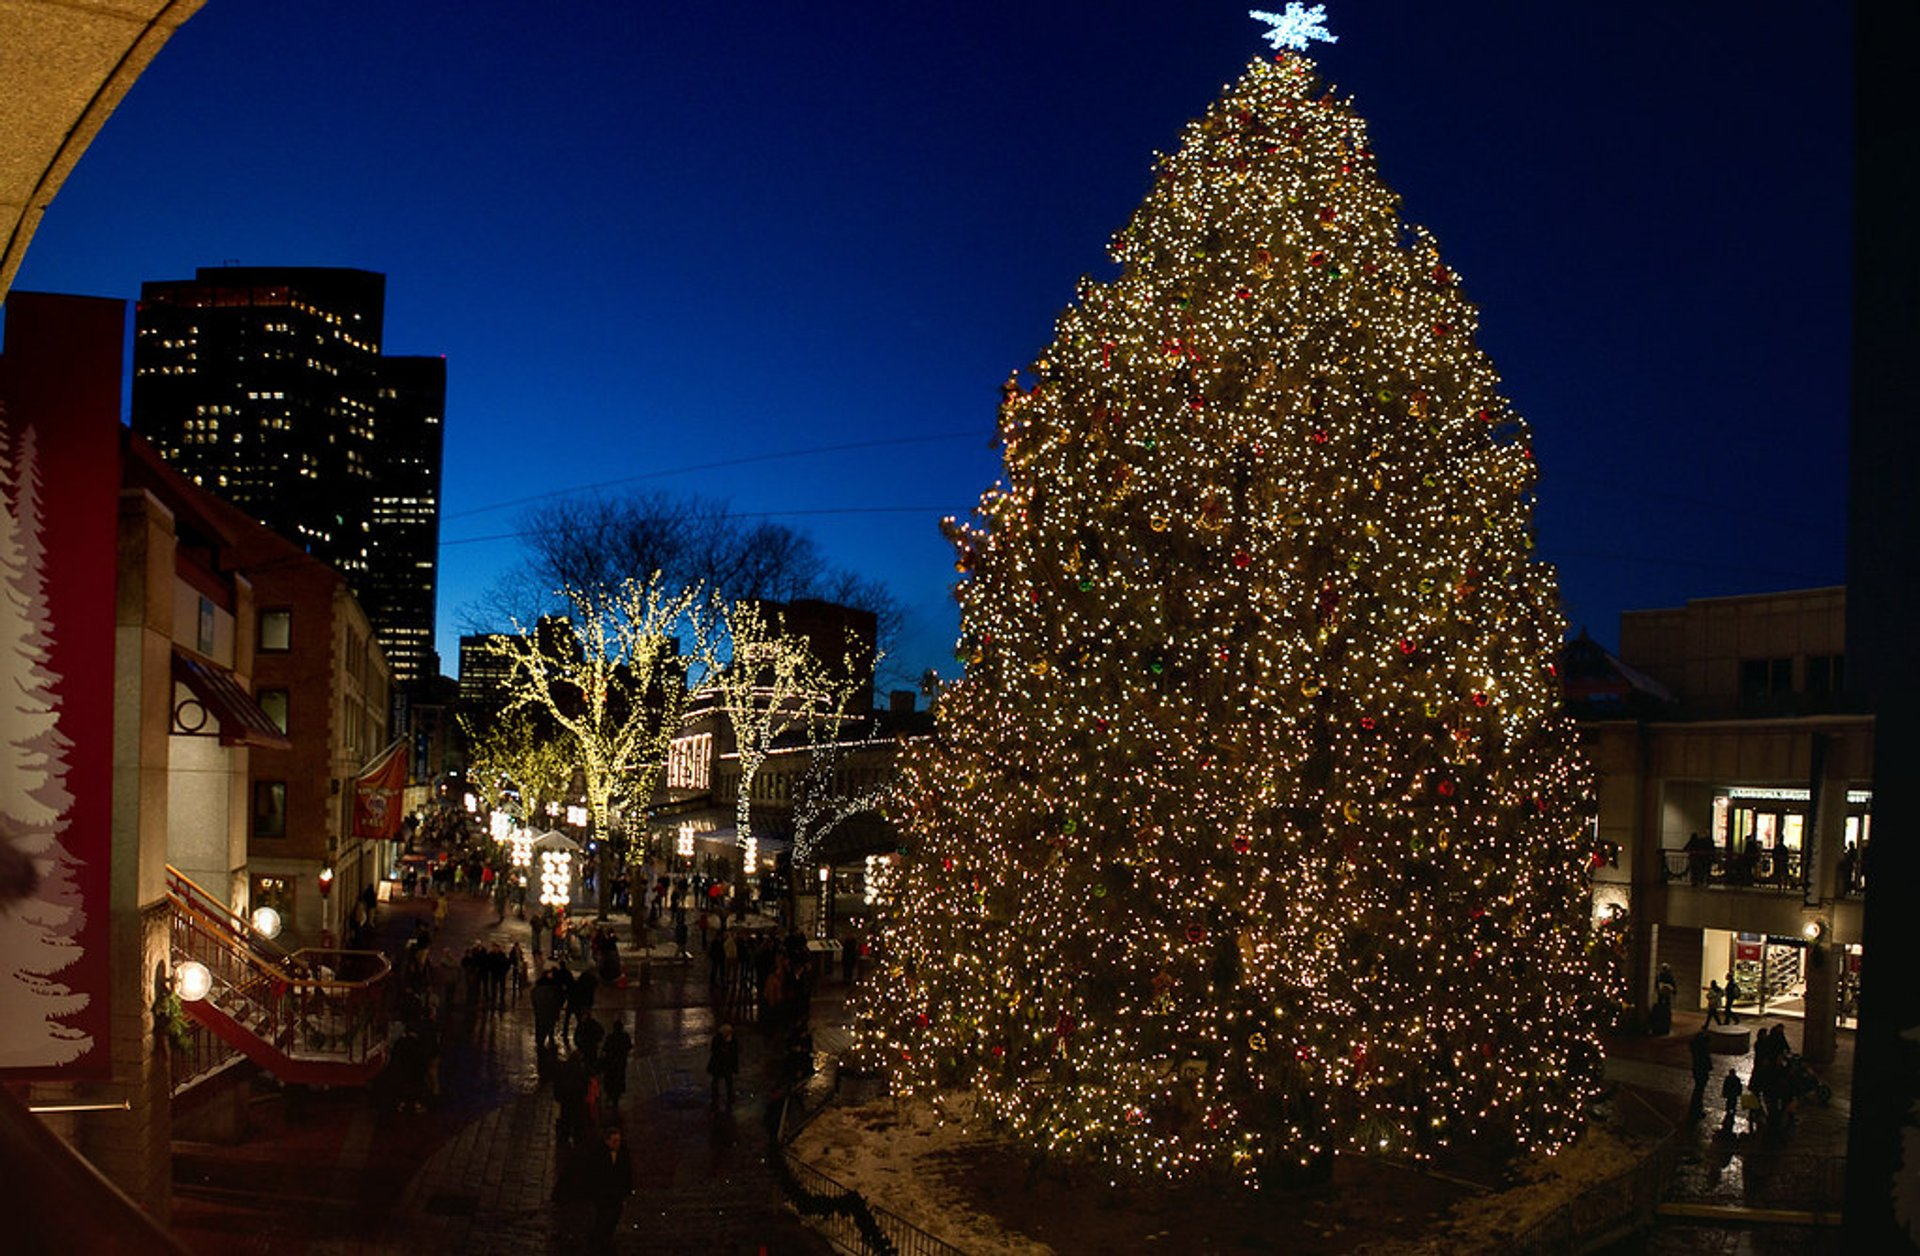 Christmas Lights in Boston 2020 - Best Time